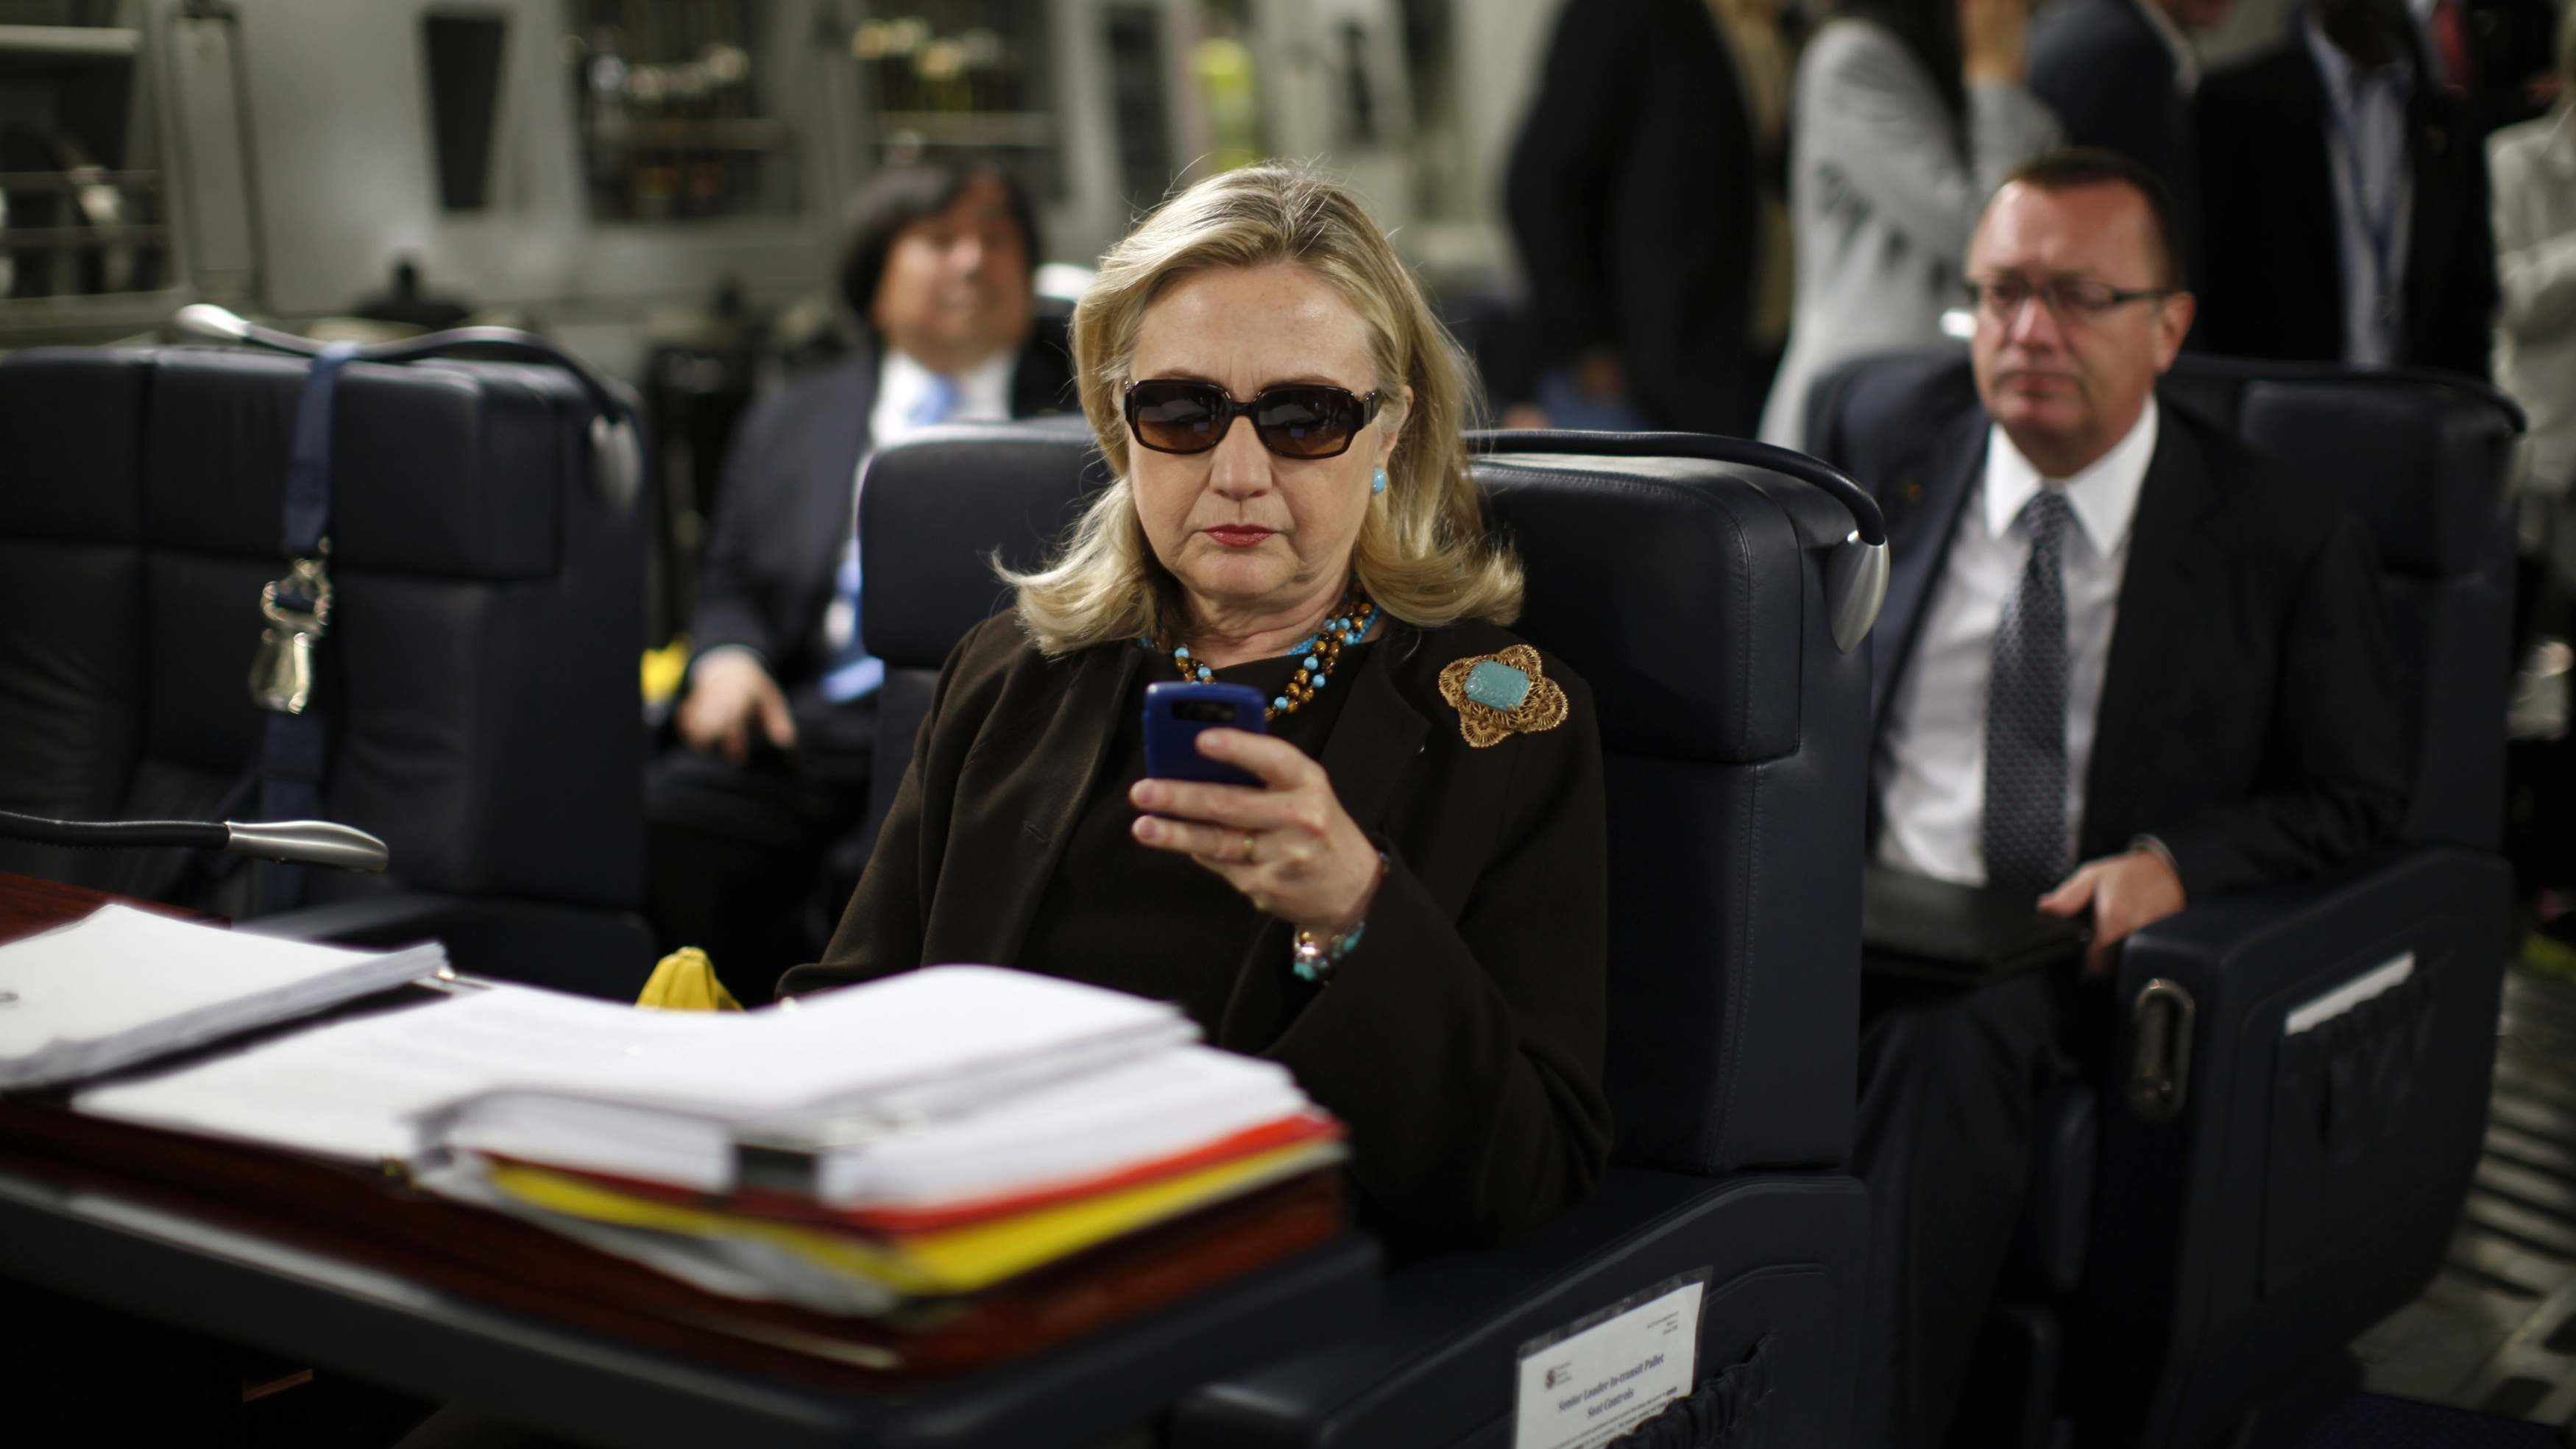 FILE - In this Oct. 18, 2011, file photo, then-Secretary of State Hillary Rodham Clinton checks her Blackberry from a desk inside a C-17 military plane upon her departure from Malta, in the Mediterranean Sea, bound for Tripoli, Libya. It's a photo that became an Internet meme: Hillary Rodham Clinton, wearing sunglasses, staring at her BlackBerry. Now it's becoming a focal point for Republicans on the House committee that's investigating the deadly attacks in Benghazi, Libya. The chairman, South Carolina Republican Trey Gowdy, wants to know why the panel has no emails from the day the photo was taken as Clinton, then the secretary of state, was en route to Tripoli.  (AP Photo/Kevin Lamarque, Pool, File)